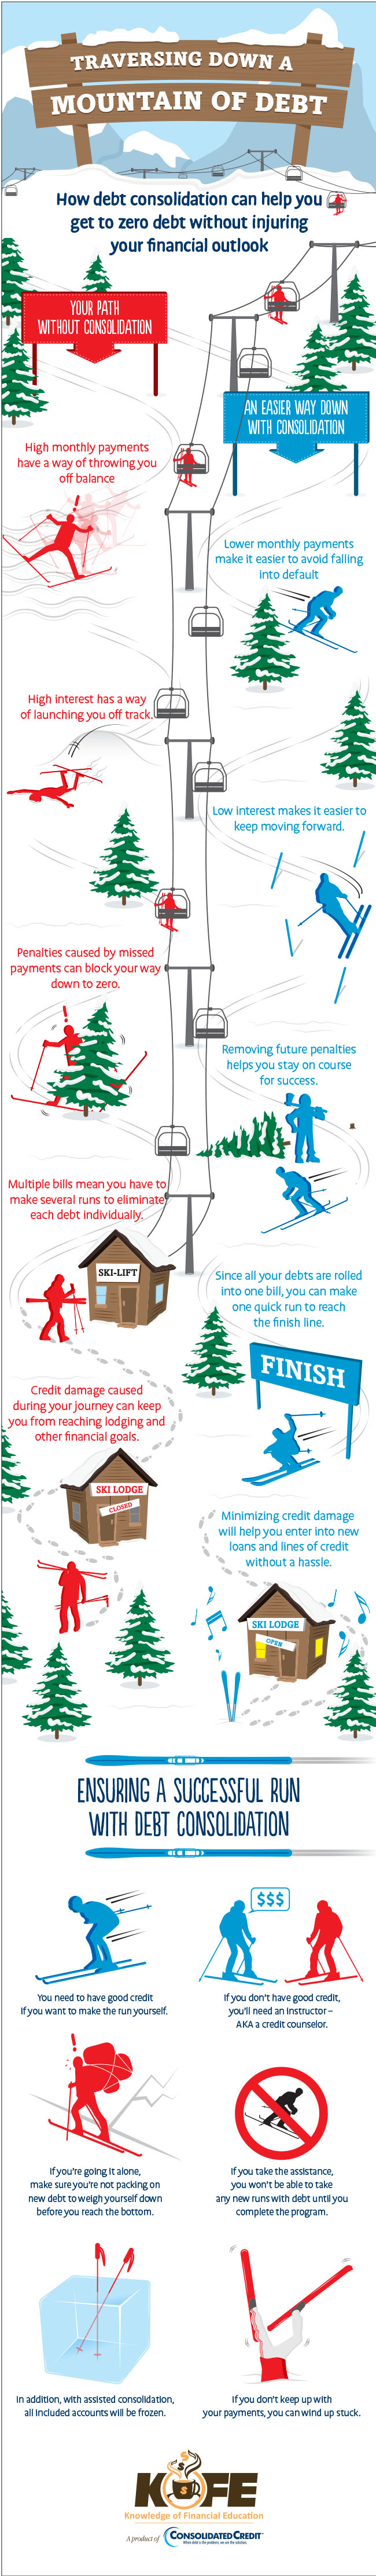 Traversing Down a Mountain of Debt infographic